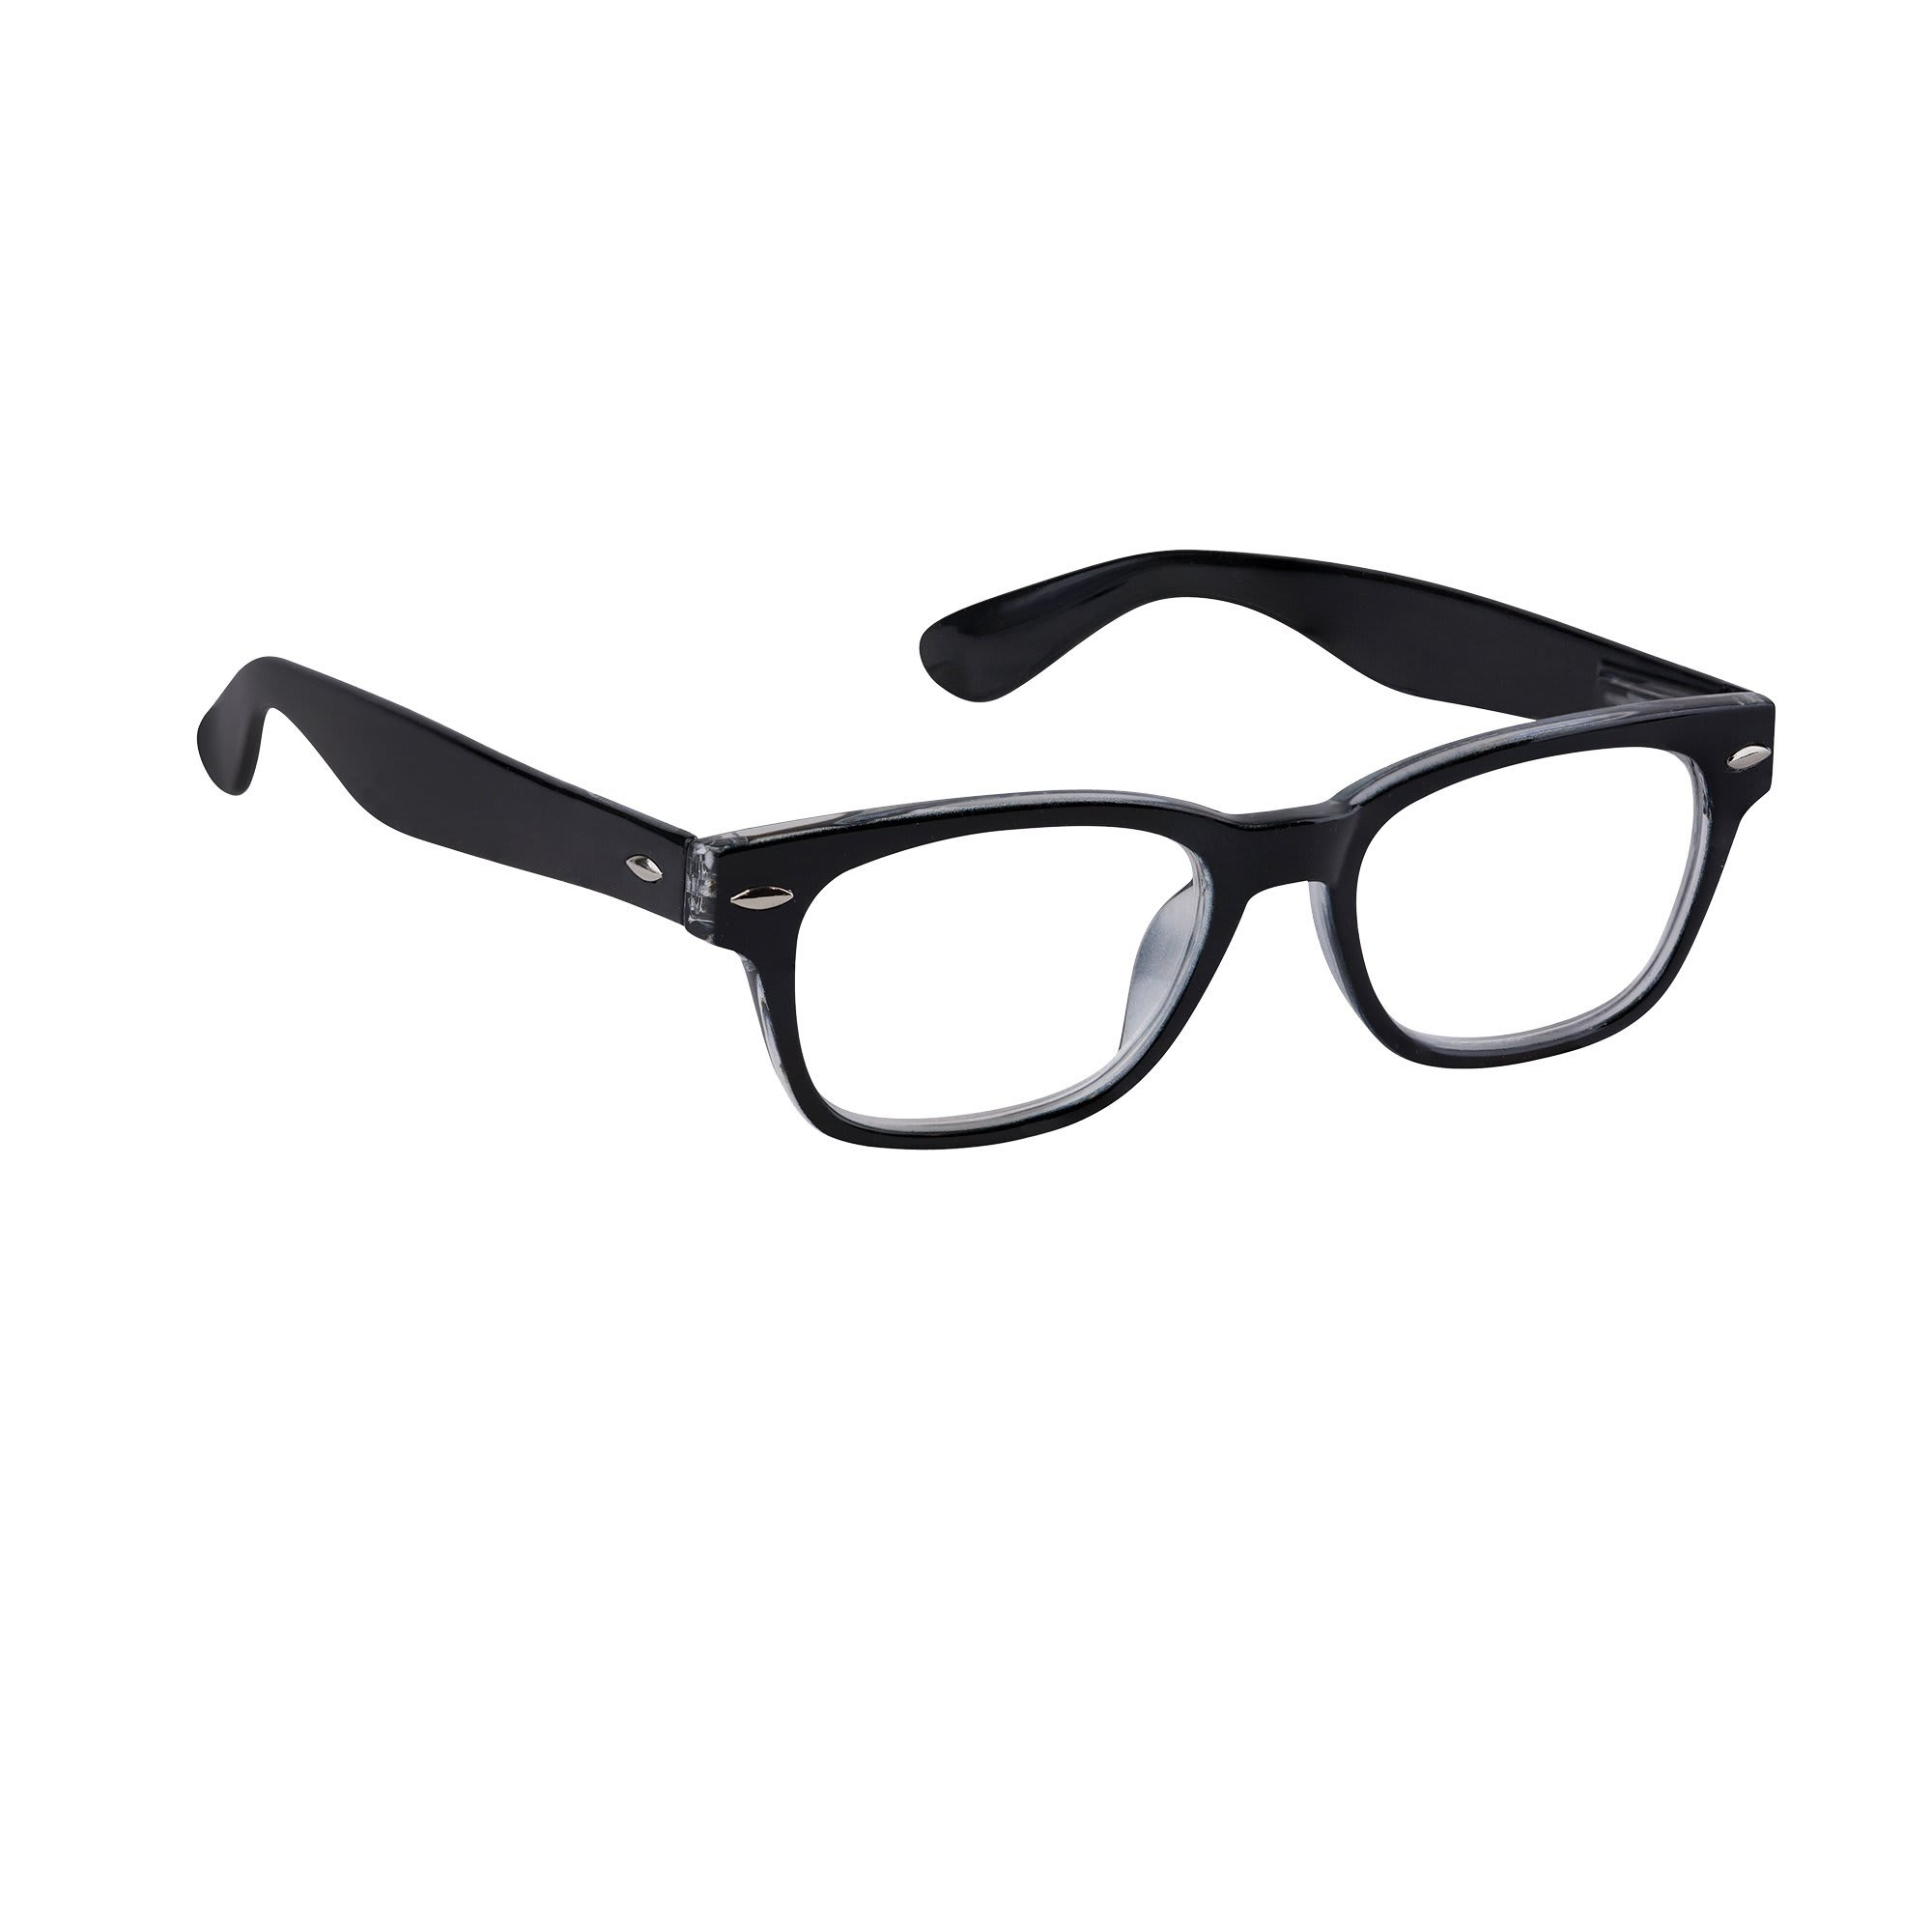 Peeperspecs Simply Peepers Black Reading Glasses